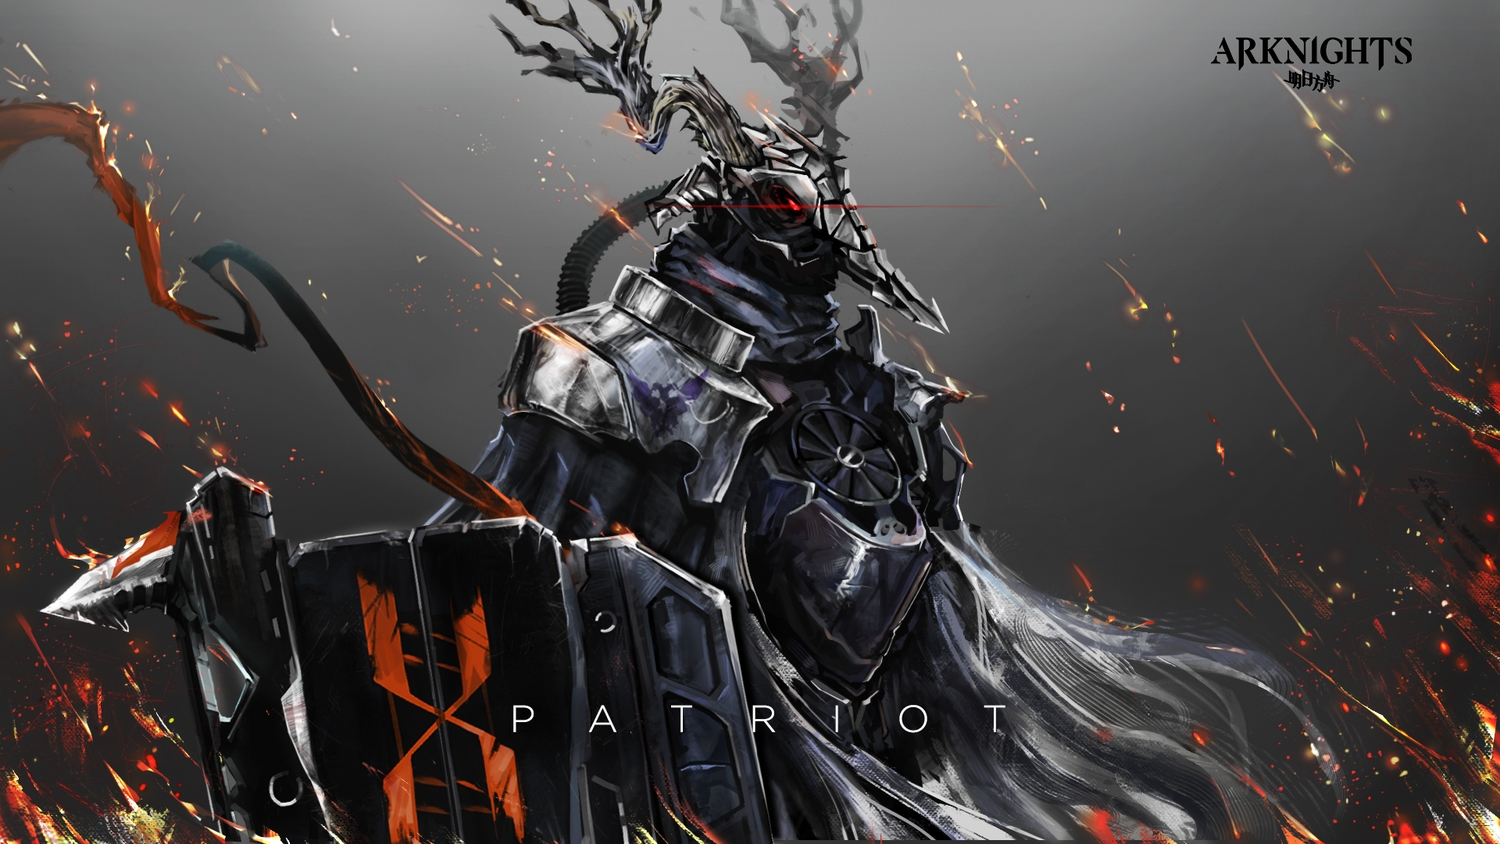 all_male arknights armor fire horns logo male patriot_(arknights) red_eyes spear tagme_(artist) weapon